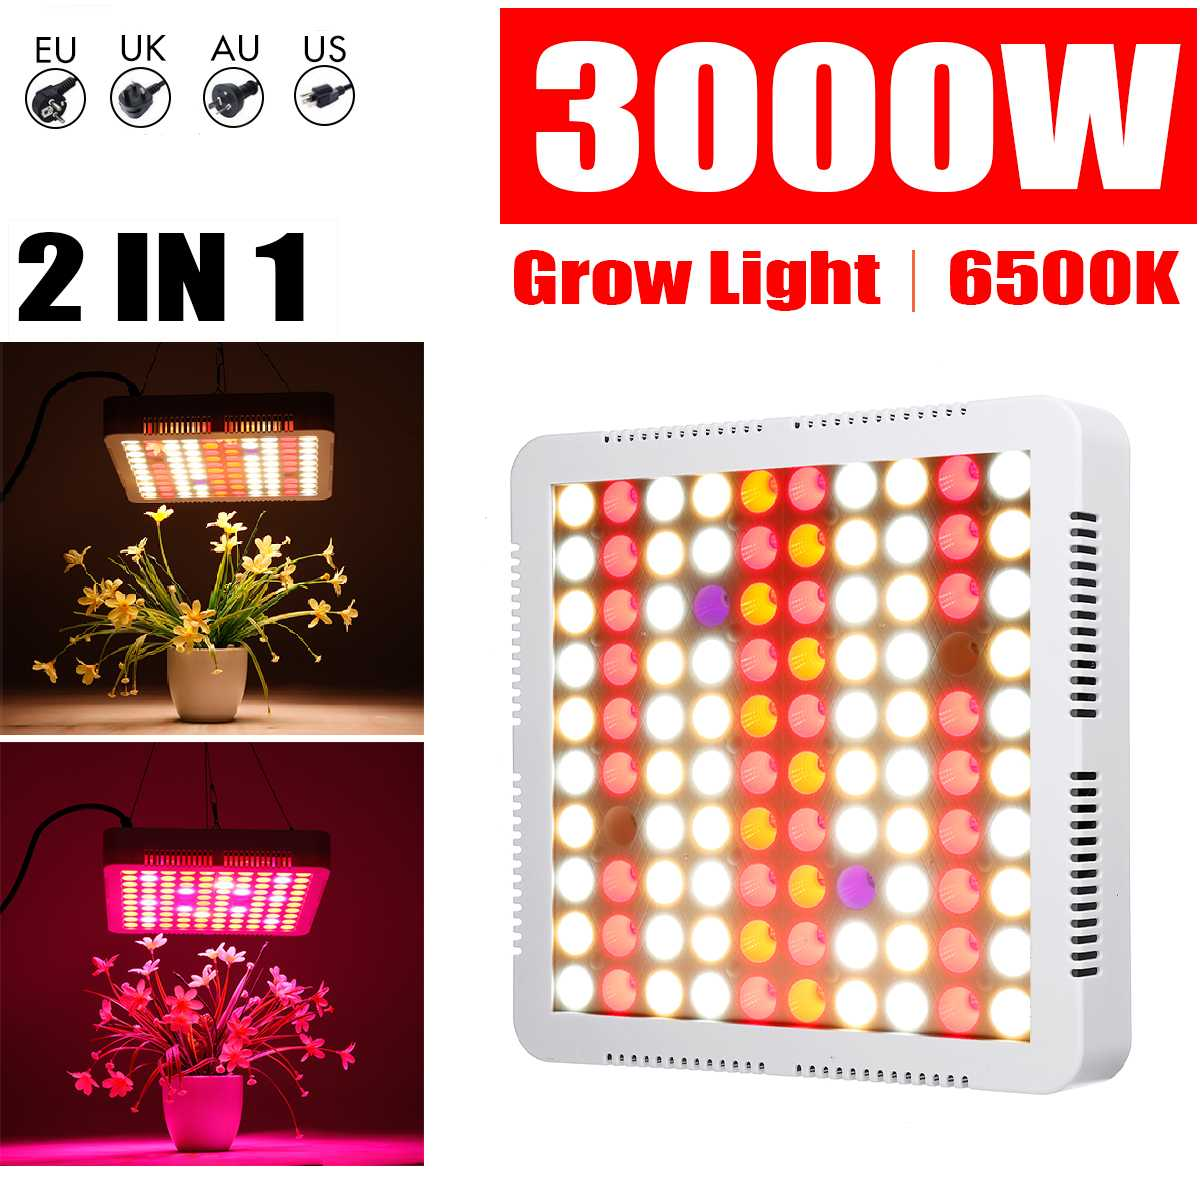 <font><b>3000W</b></font> Phyto Lamps <font><b>LED</b></font> <font><b>Grow</b></font> <font><b>Light</b></font> Full Spectrum Plant Lighting For Plants Flowers Seedling Cultivation AC85-265V image